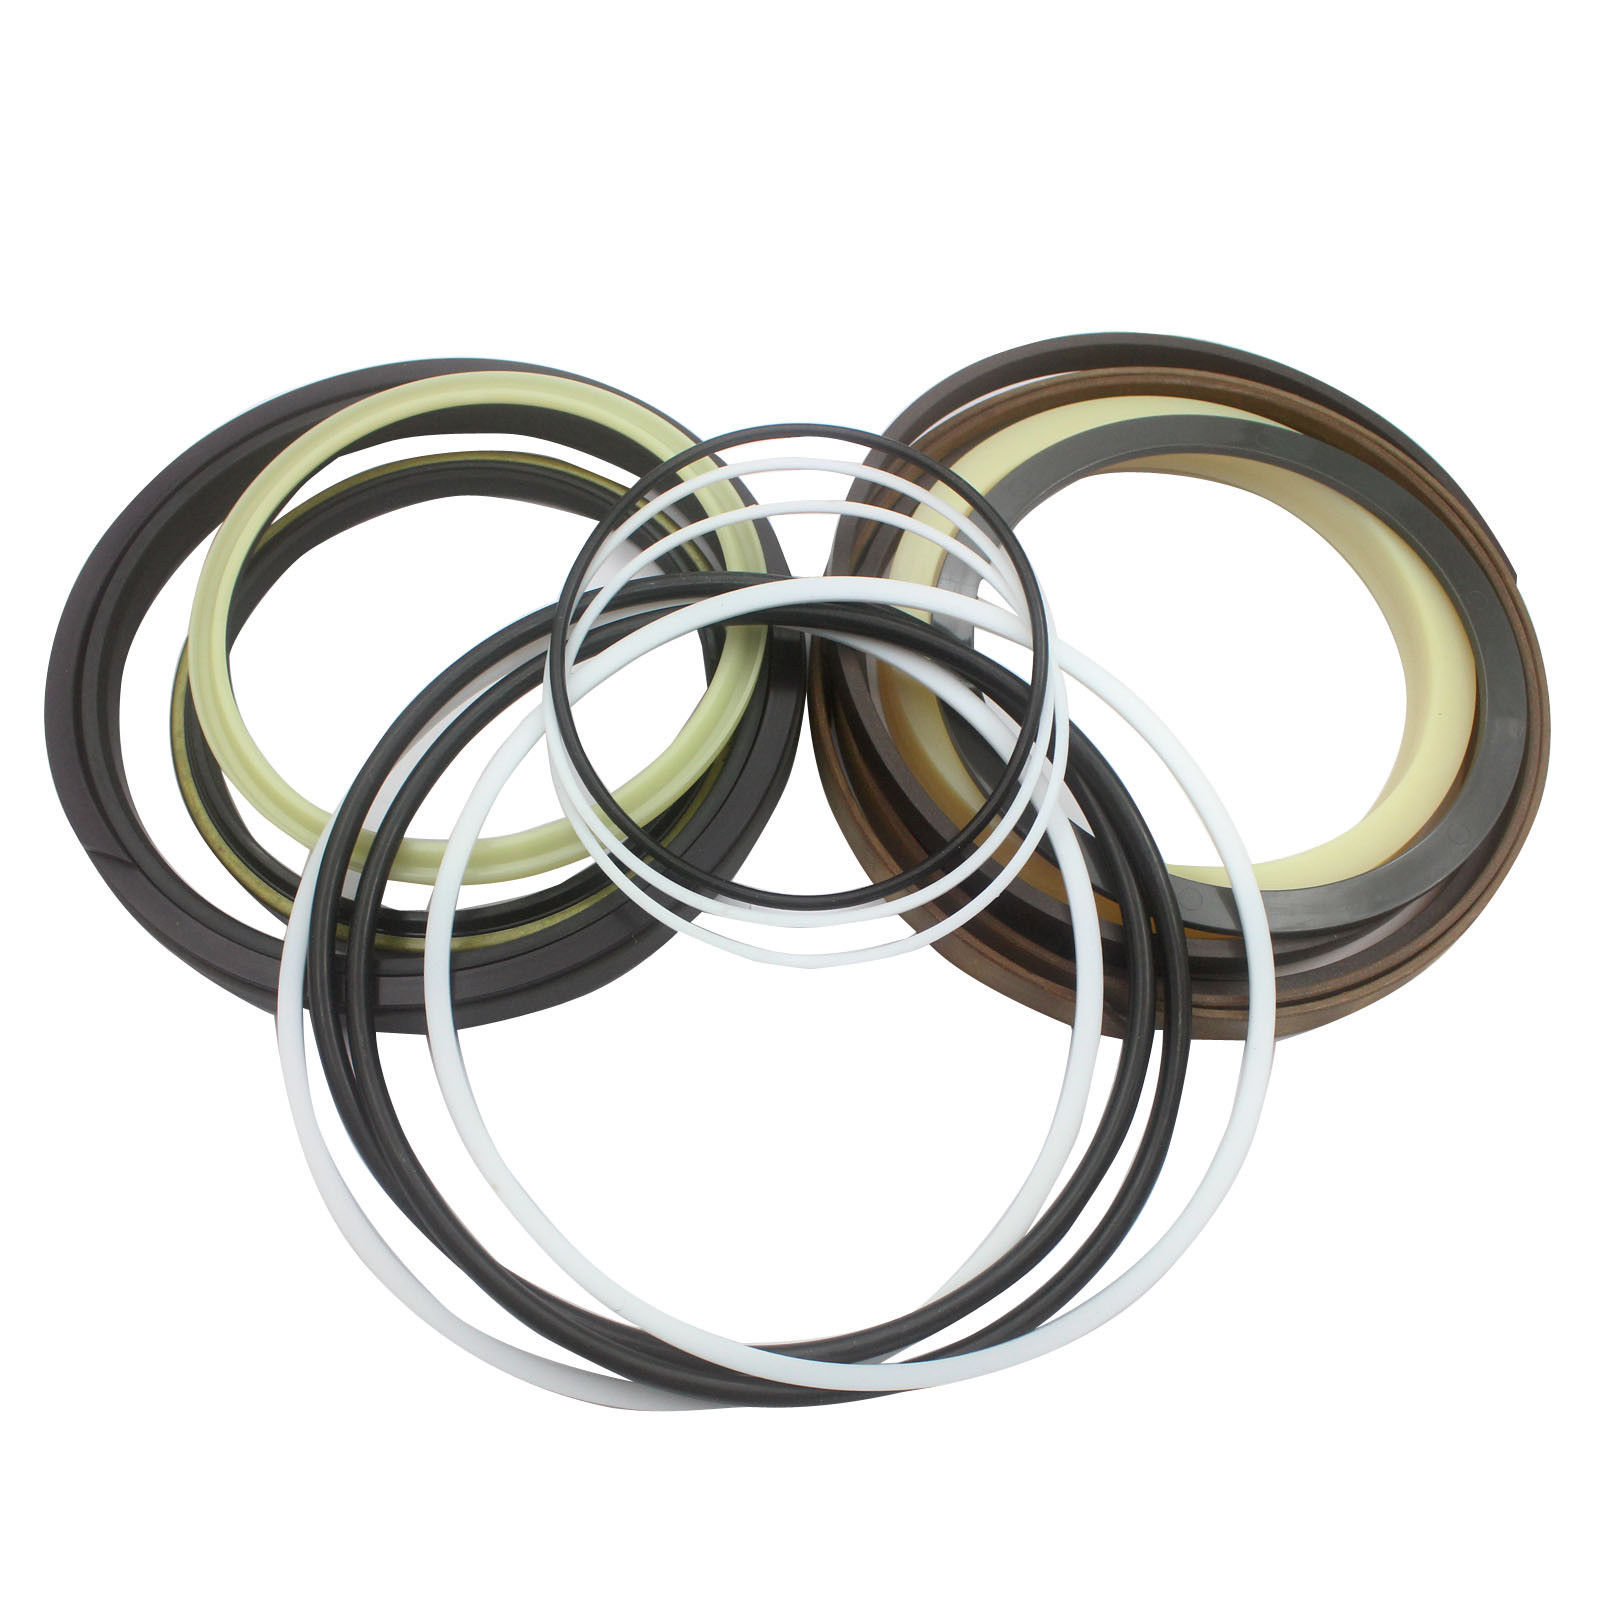 Bucket Hydraulic Cylinder Seal Kit For and 50 similar items